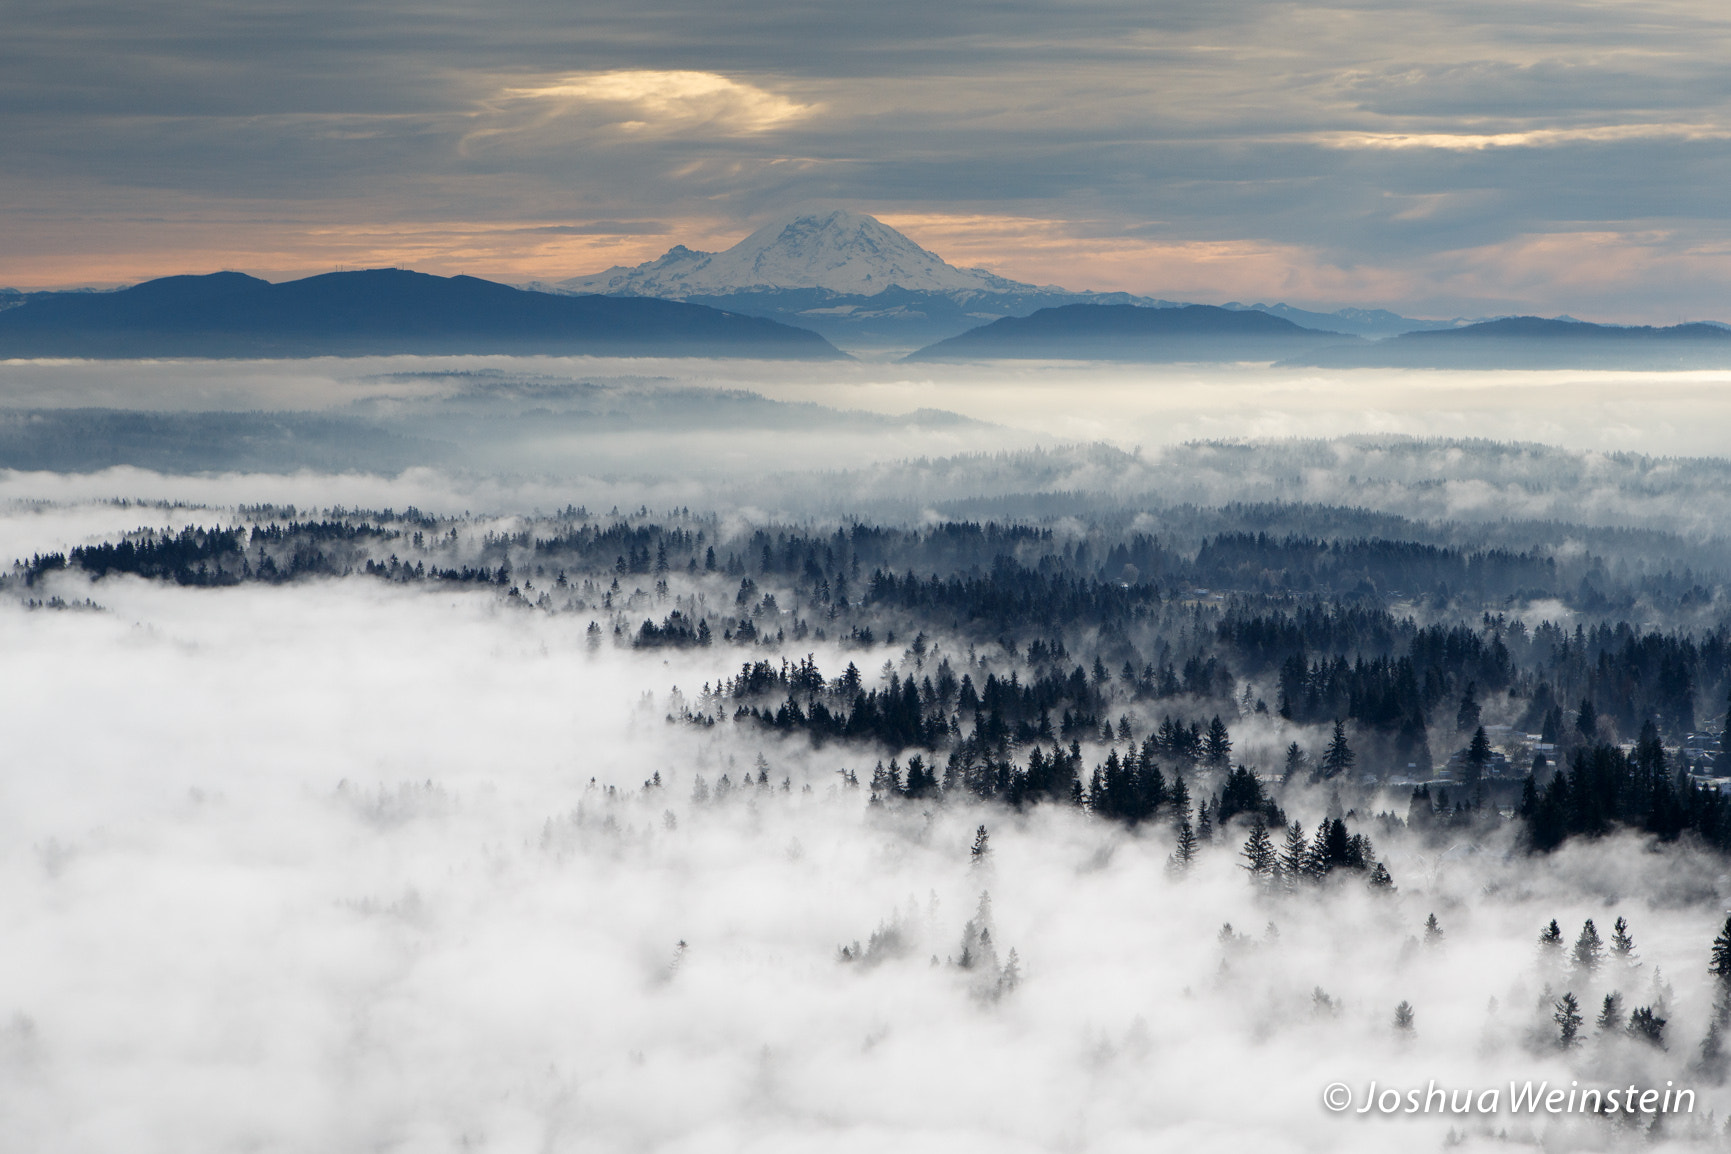 Photograph Mt. Rainier and Lowland Fog in the Cascade Foothills by Joshua Weinstein on 500px